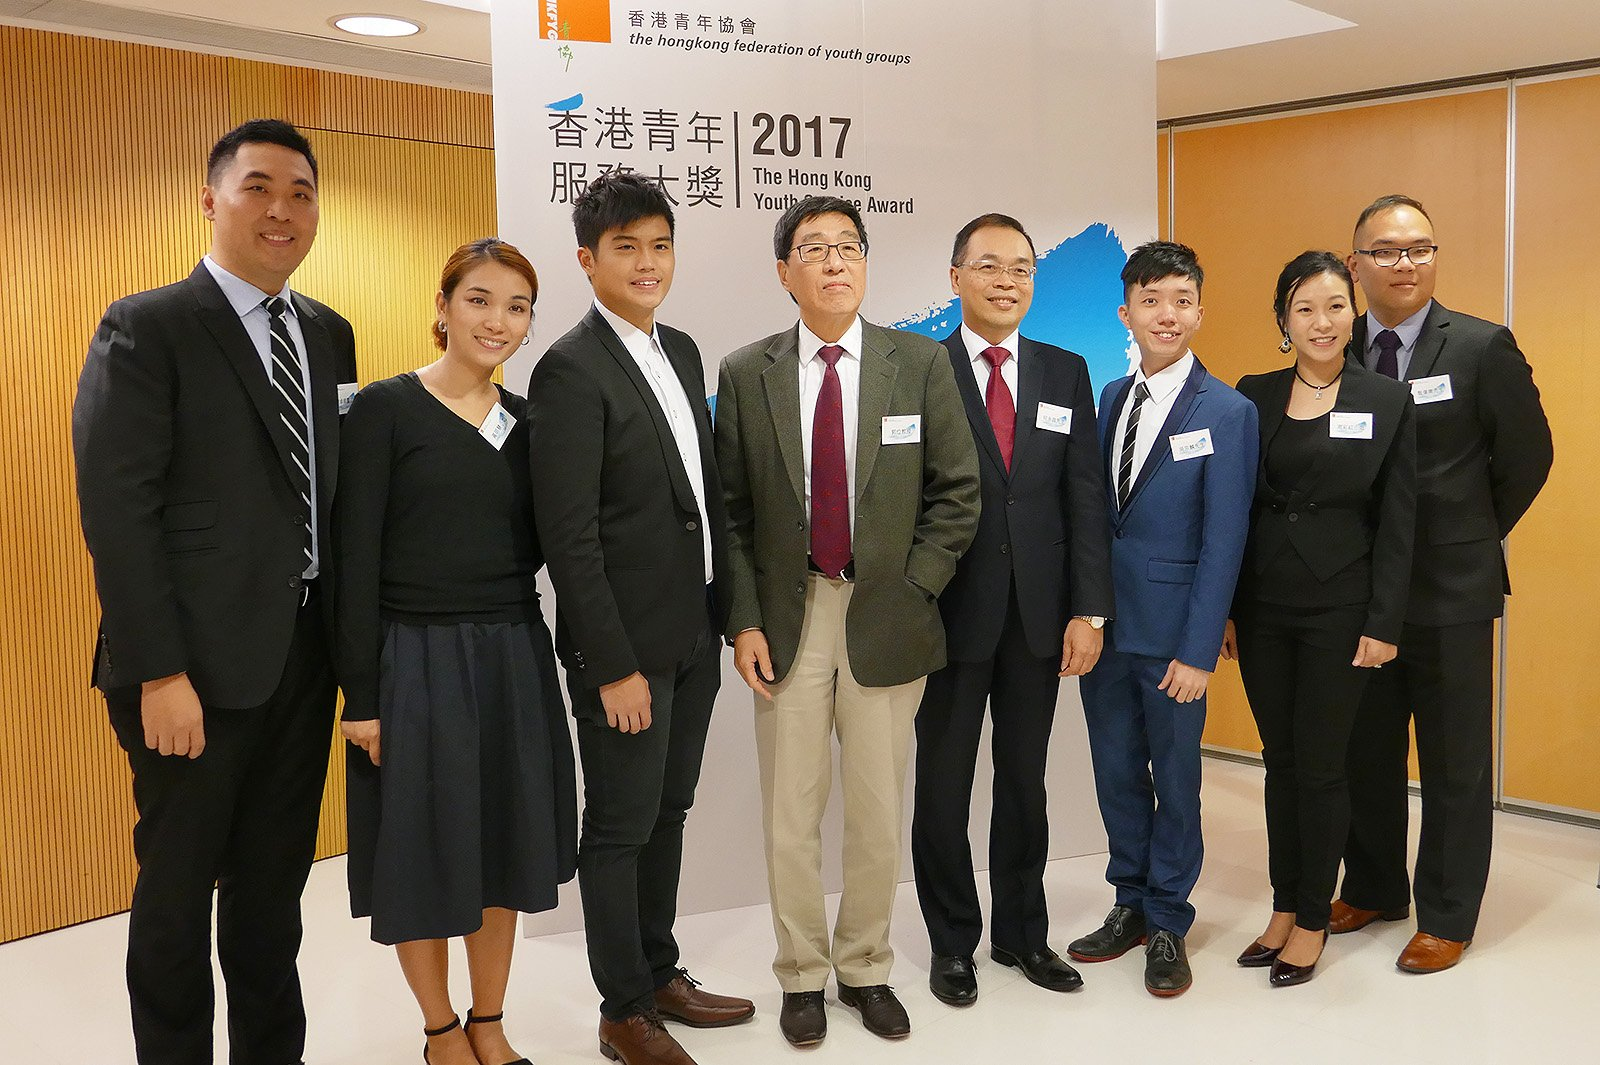 Professor Kuo (4th from left), the Hong Kong Youth Service Award 2017 awardees, and the Executive Director of The Hong Kong Federation of Youth Groups.